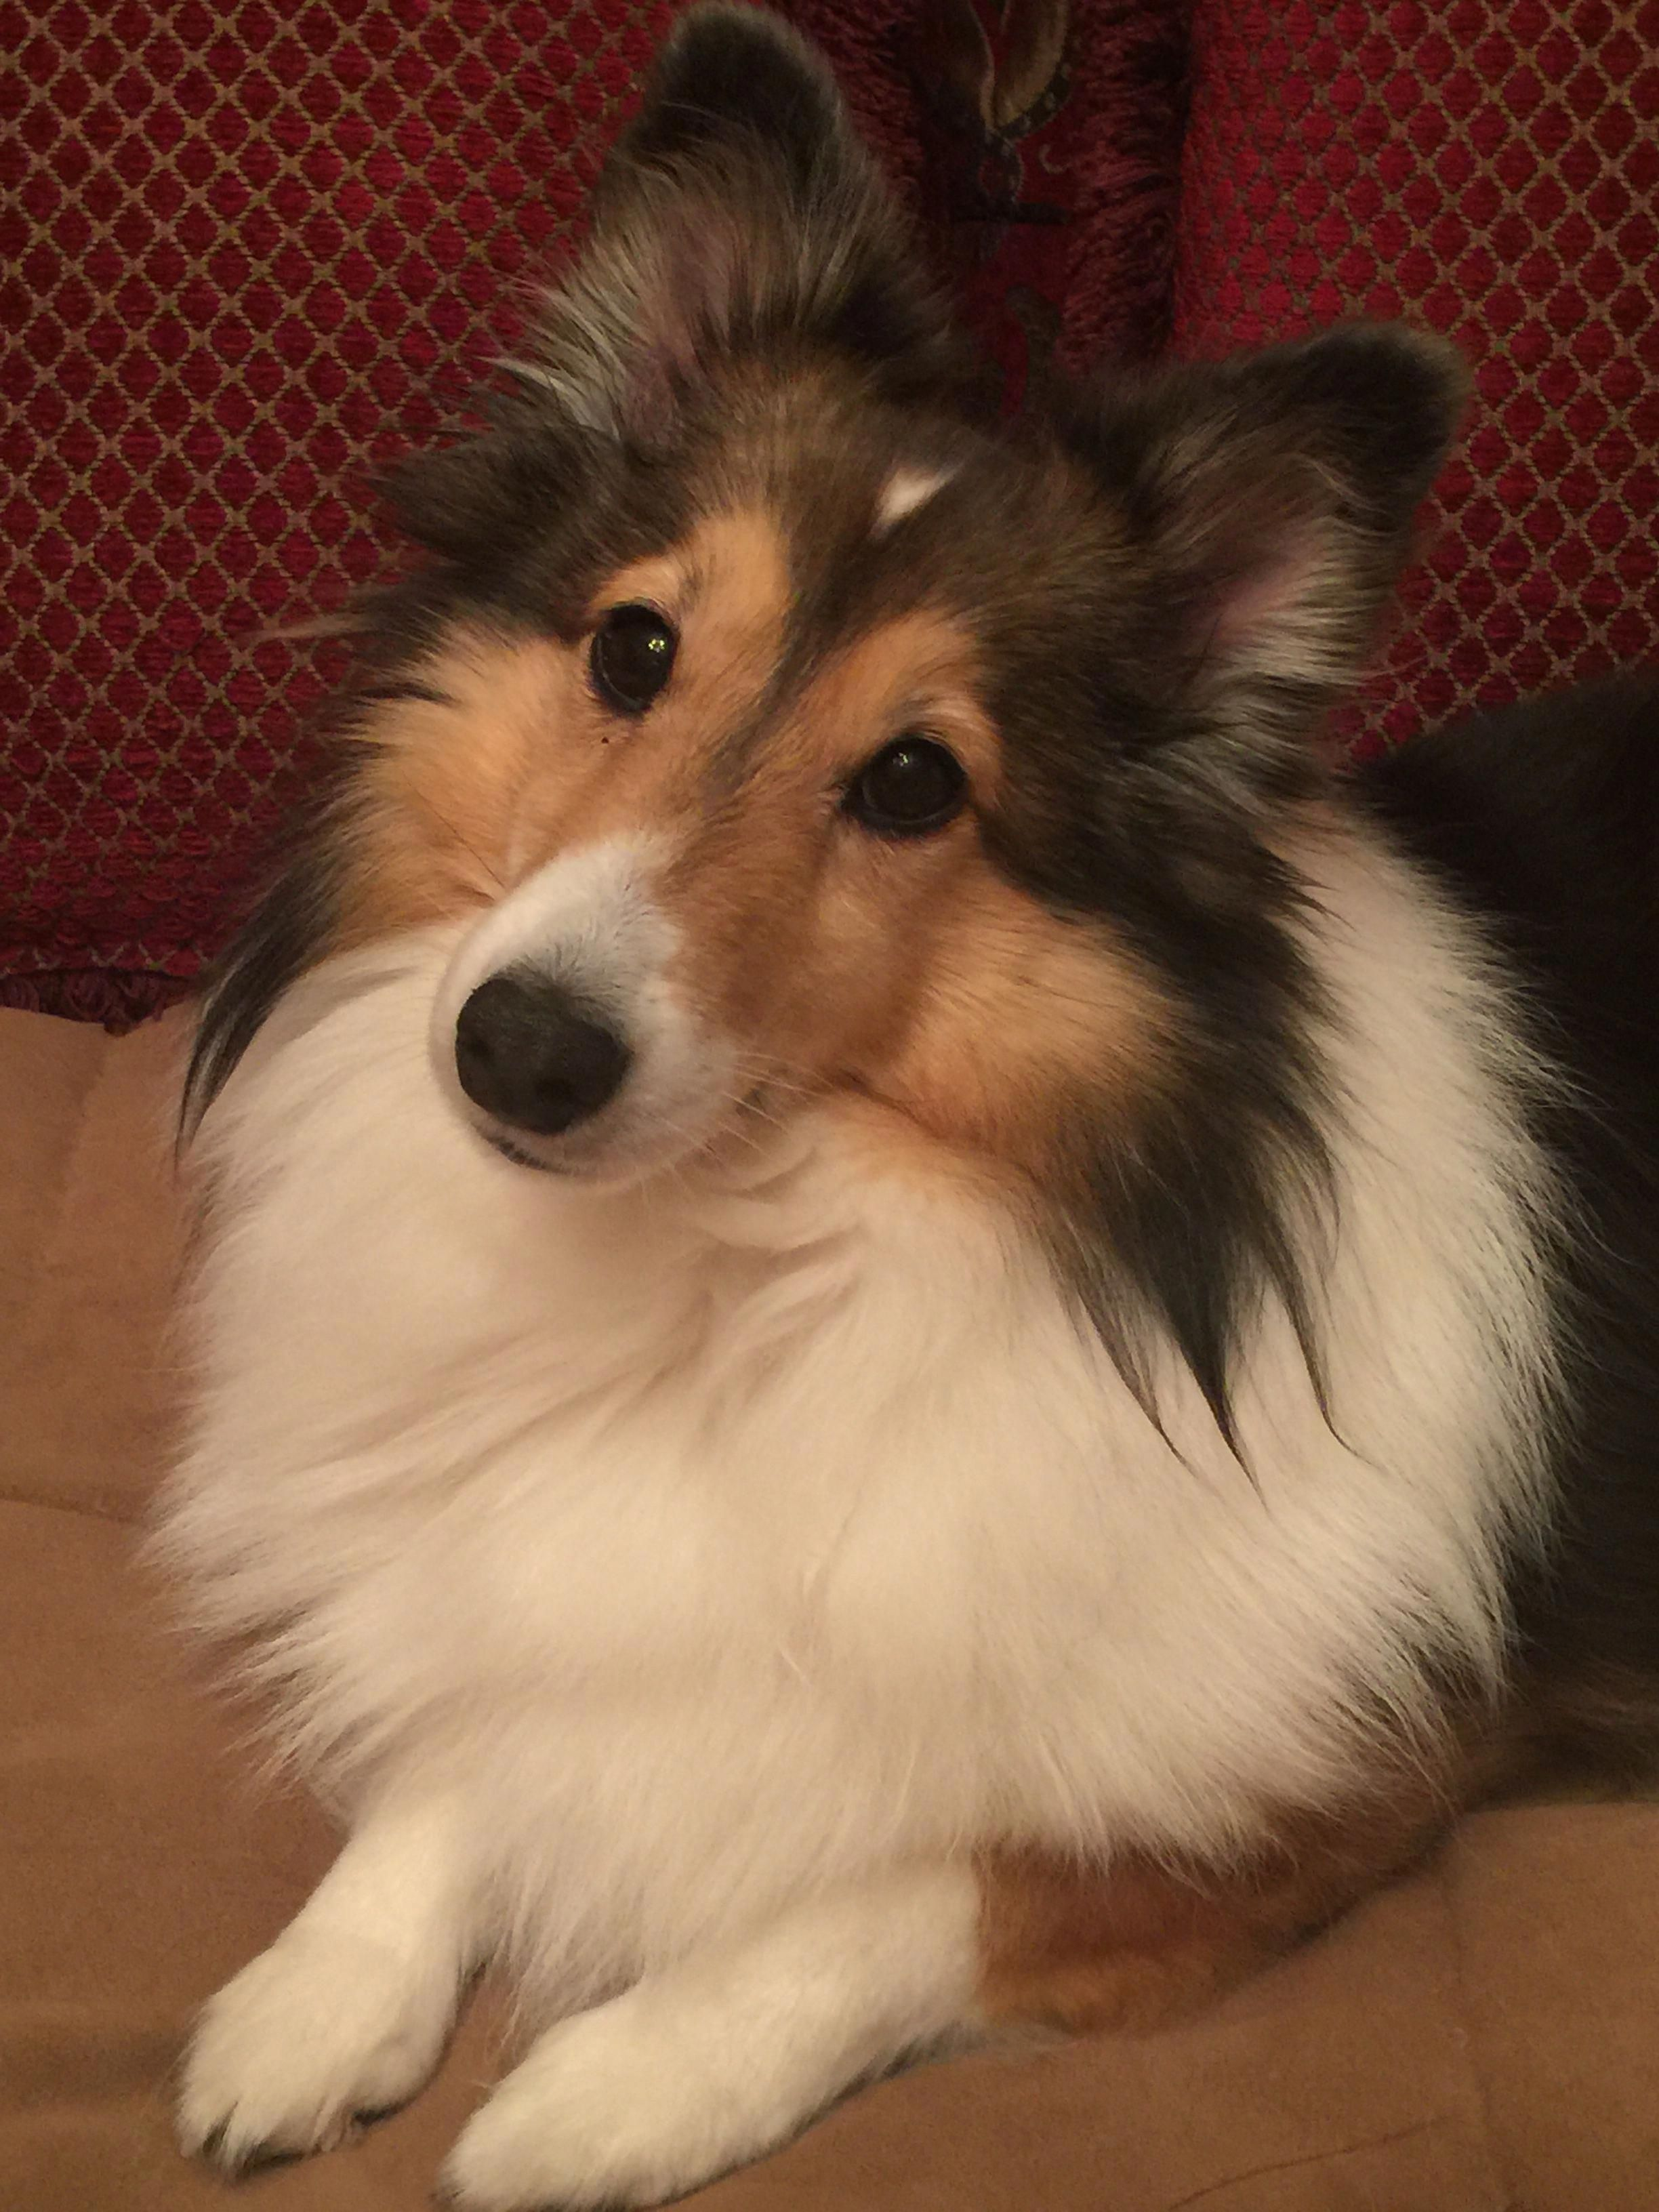 The Traits We Admire About The Cute Shetland Sheepdog Puppies